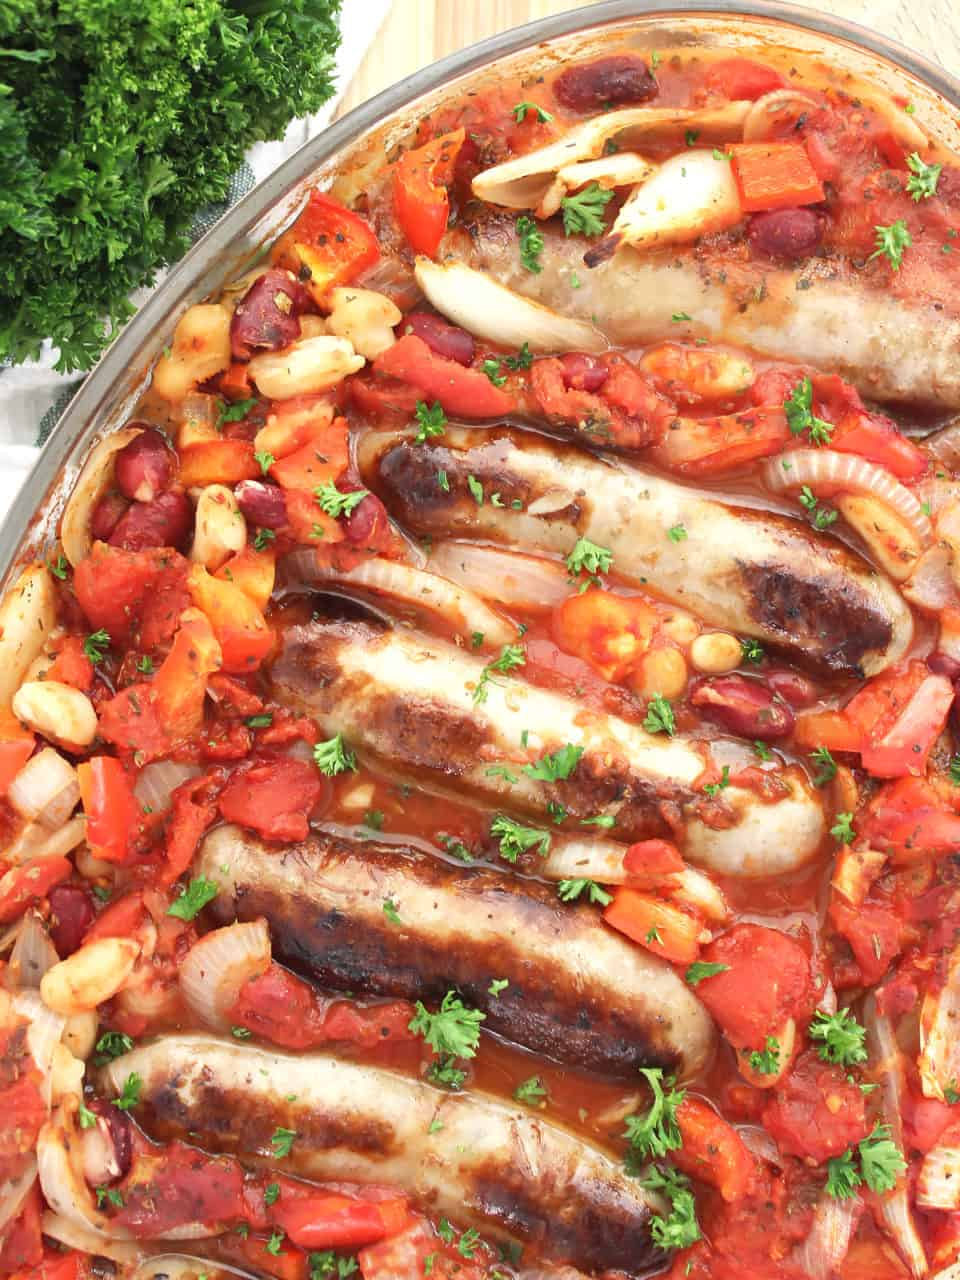 Five sausages in the bean and tomato casserole in a glass baking dish.